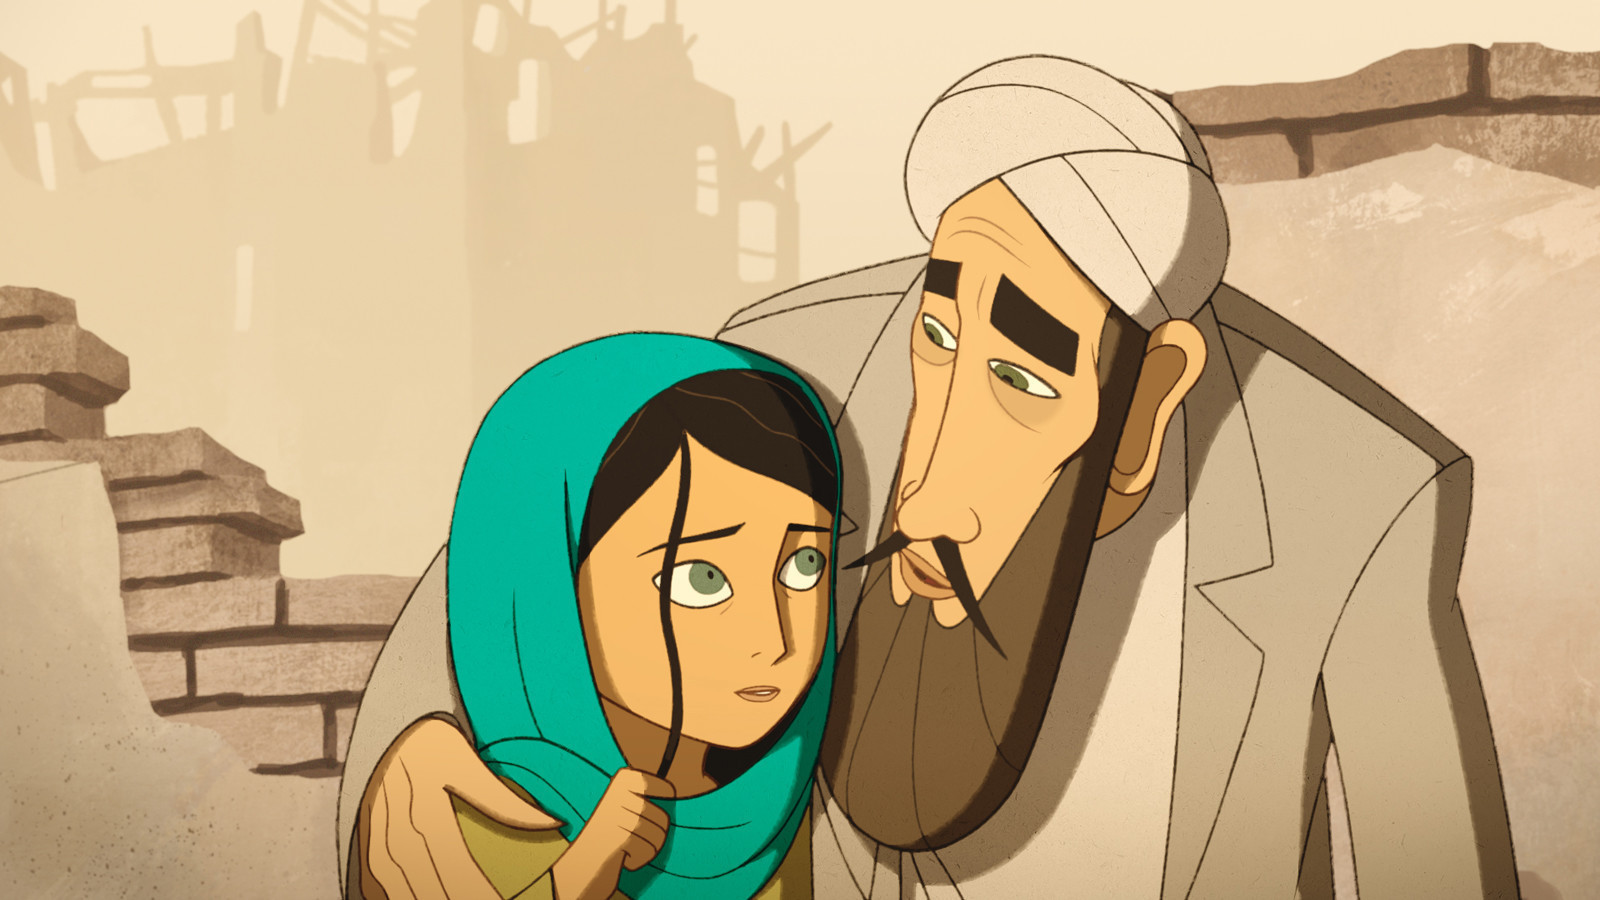 'The Breadwinner' is a striking and affecting animated film set in modern Kabul